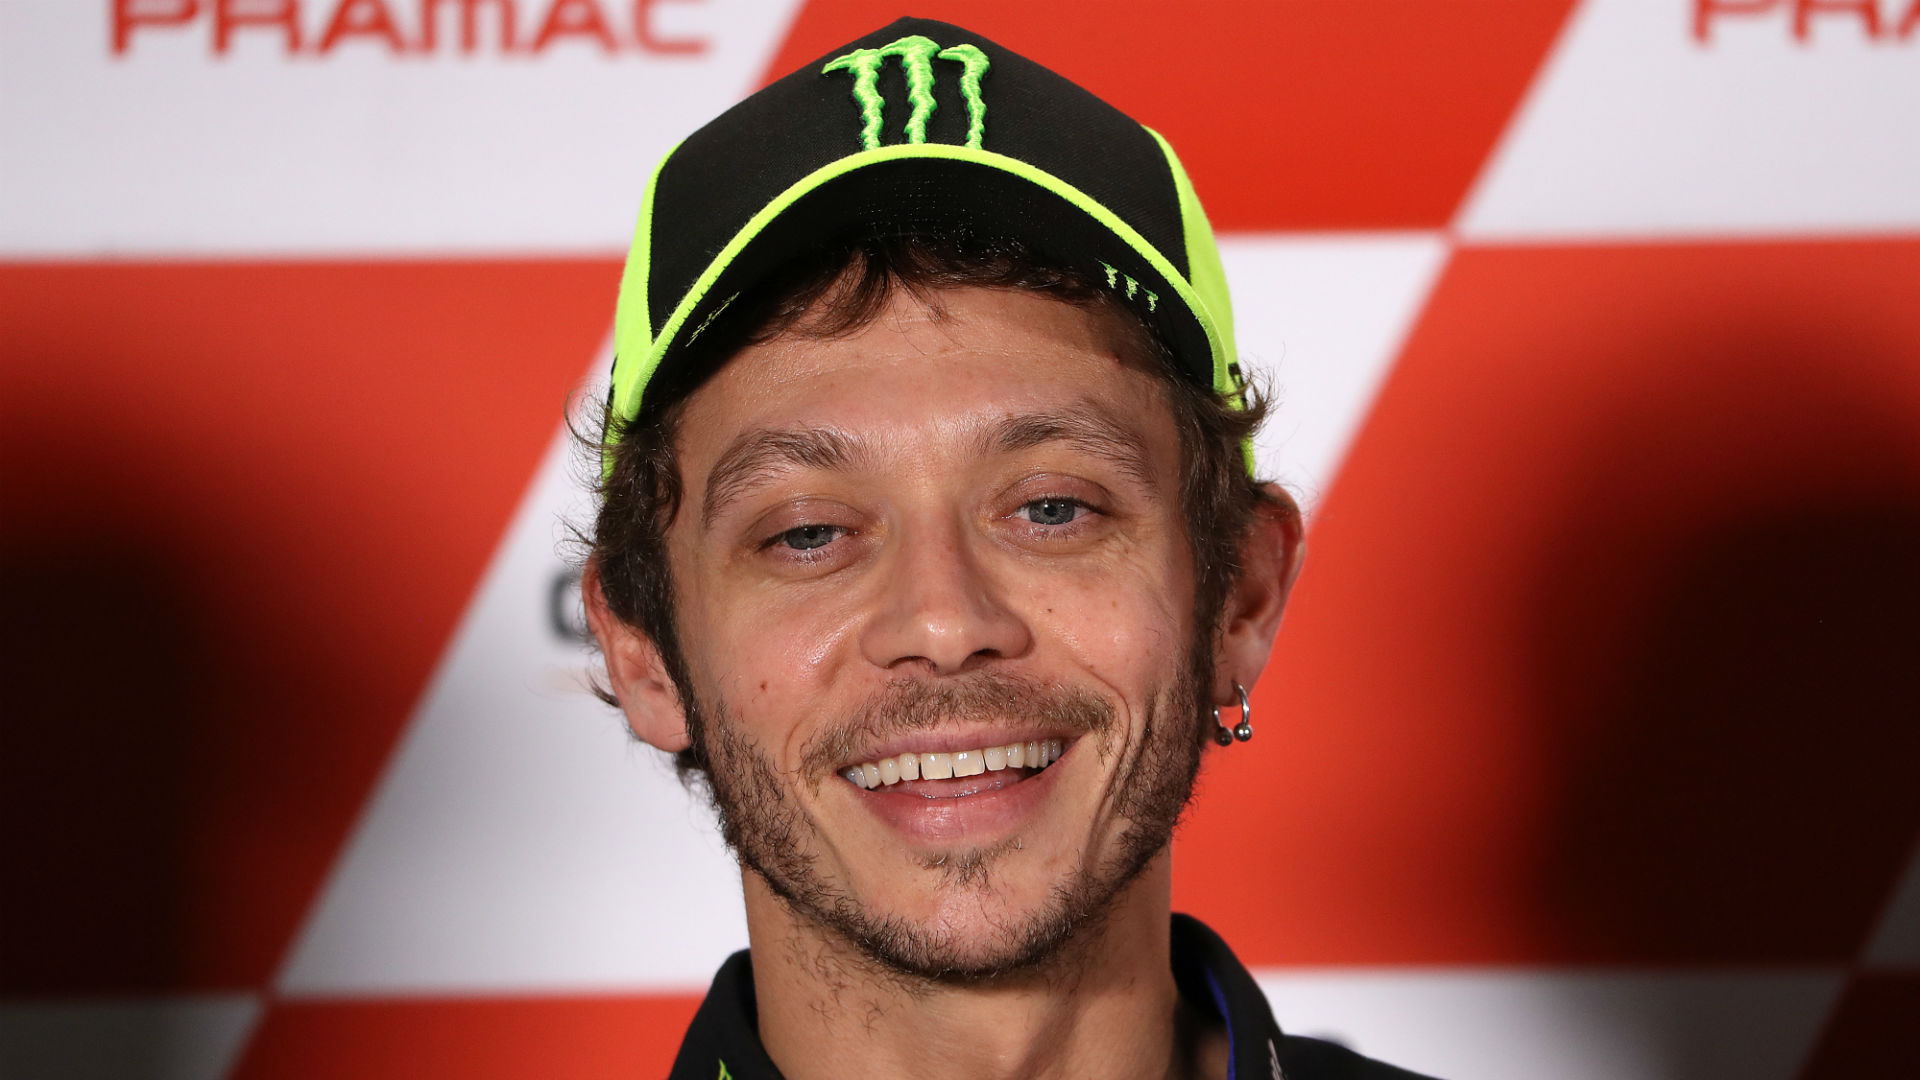 MotoGP 2020: Rossi set for Petronas deal as Dovi provides shoulder boost